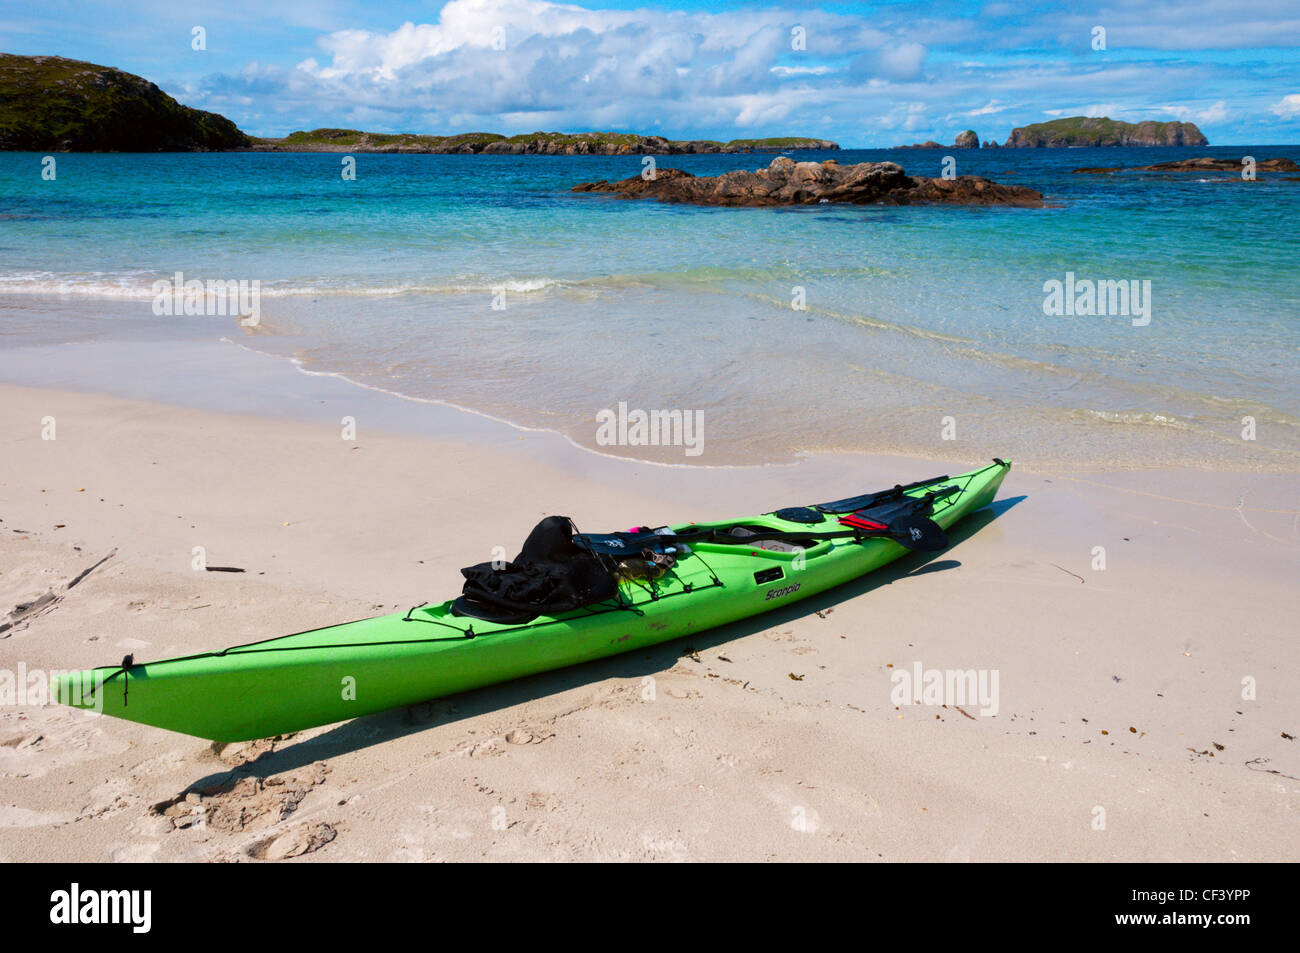 A kayak pulled up on an empty beach on Great Bernera in the Outer Hebrides. - Stock Image